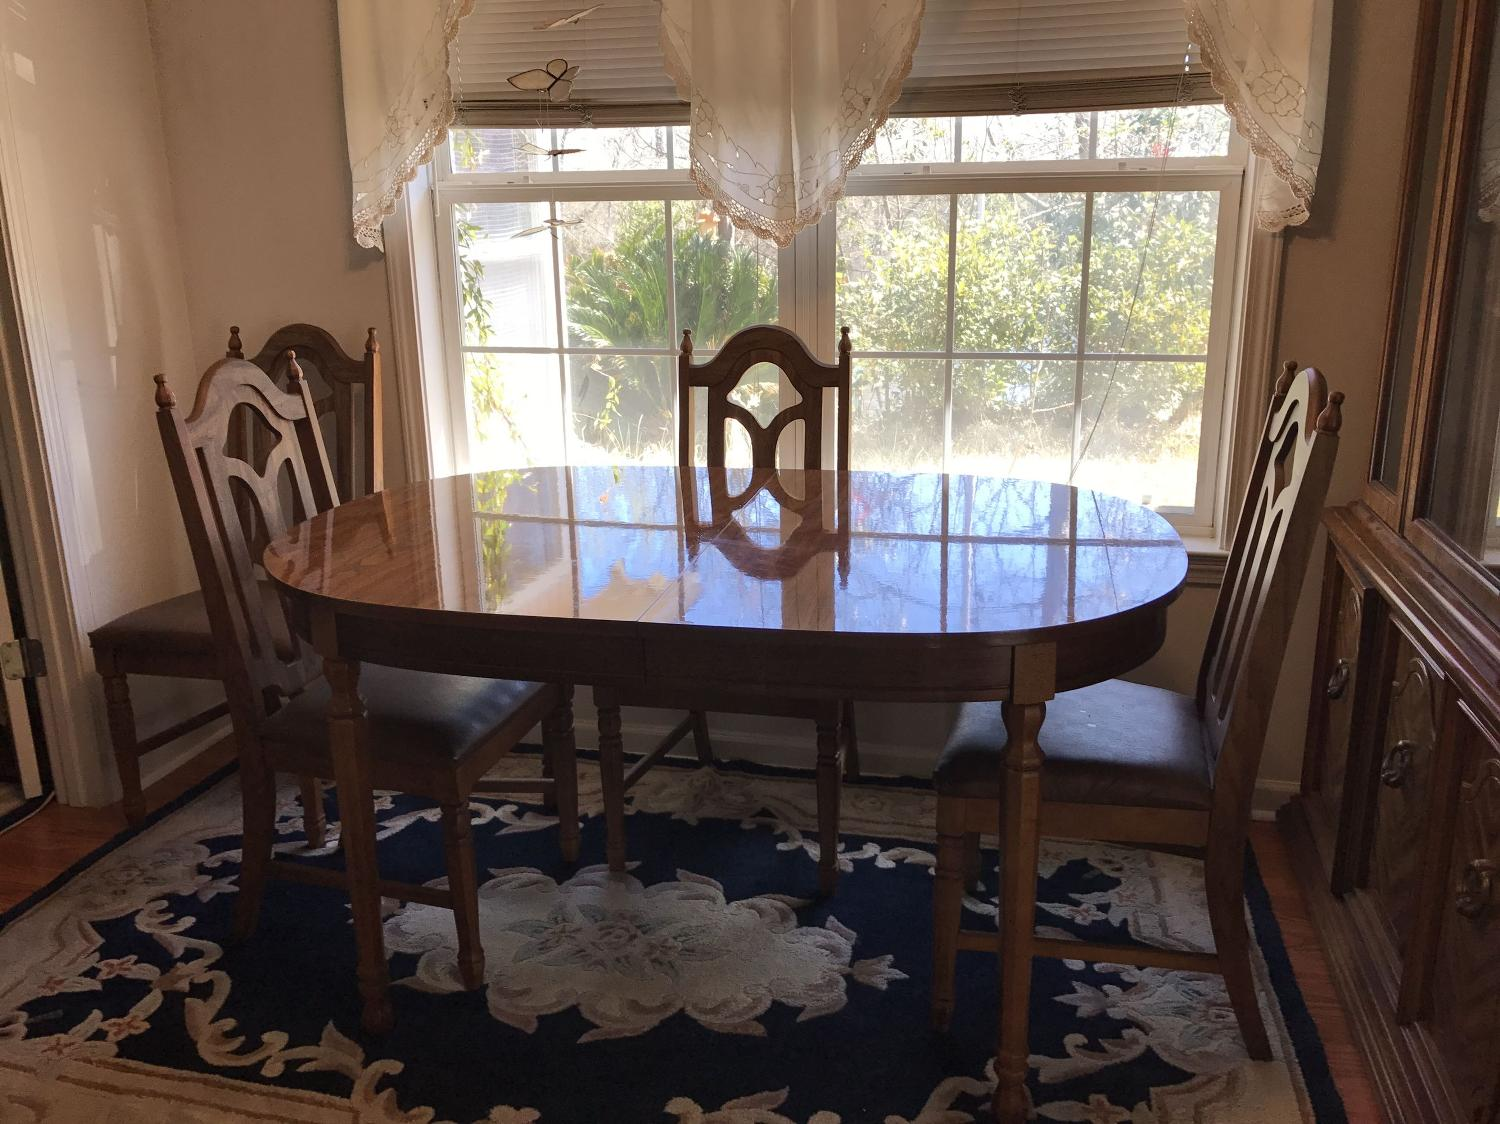 Best China Cabinet Table W Leaf 6 Chairs For Sale In Sumter South Carolina For 2018